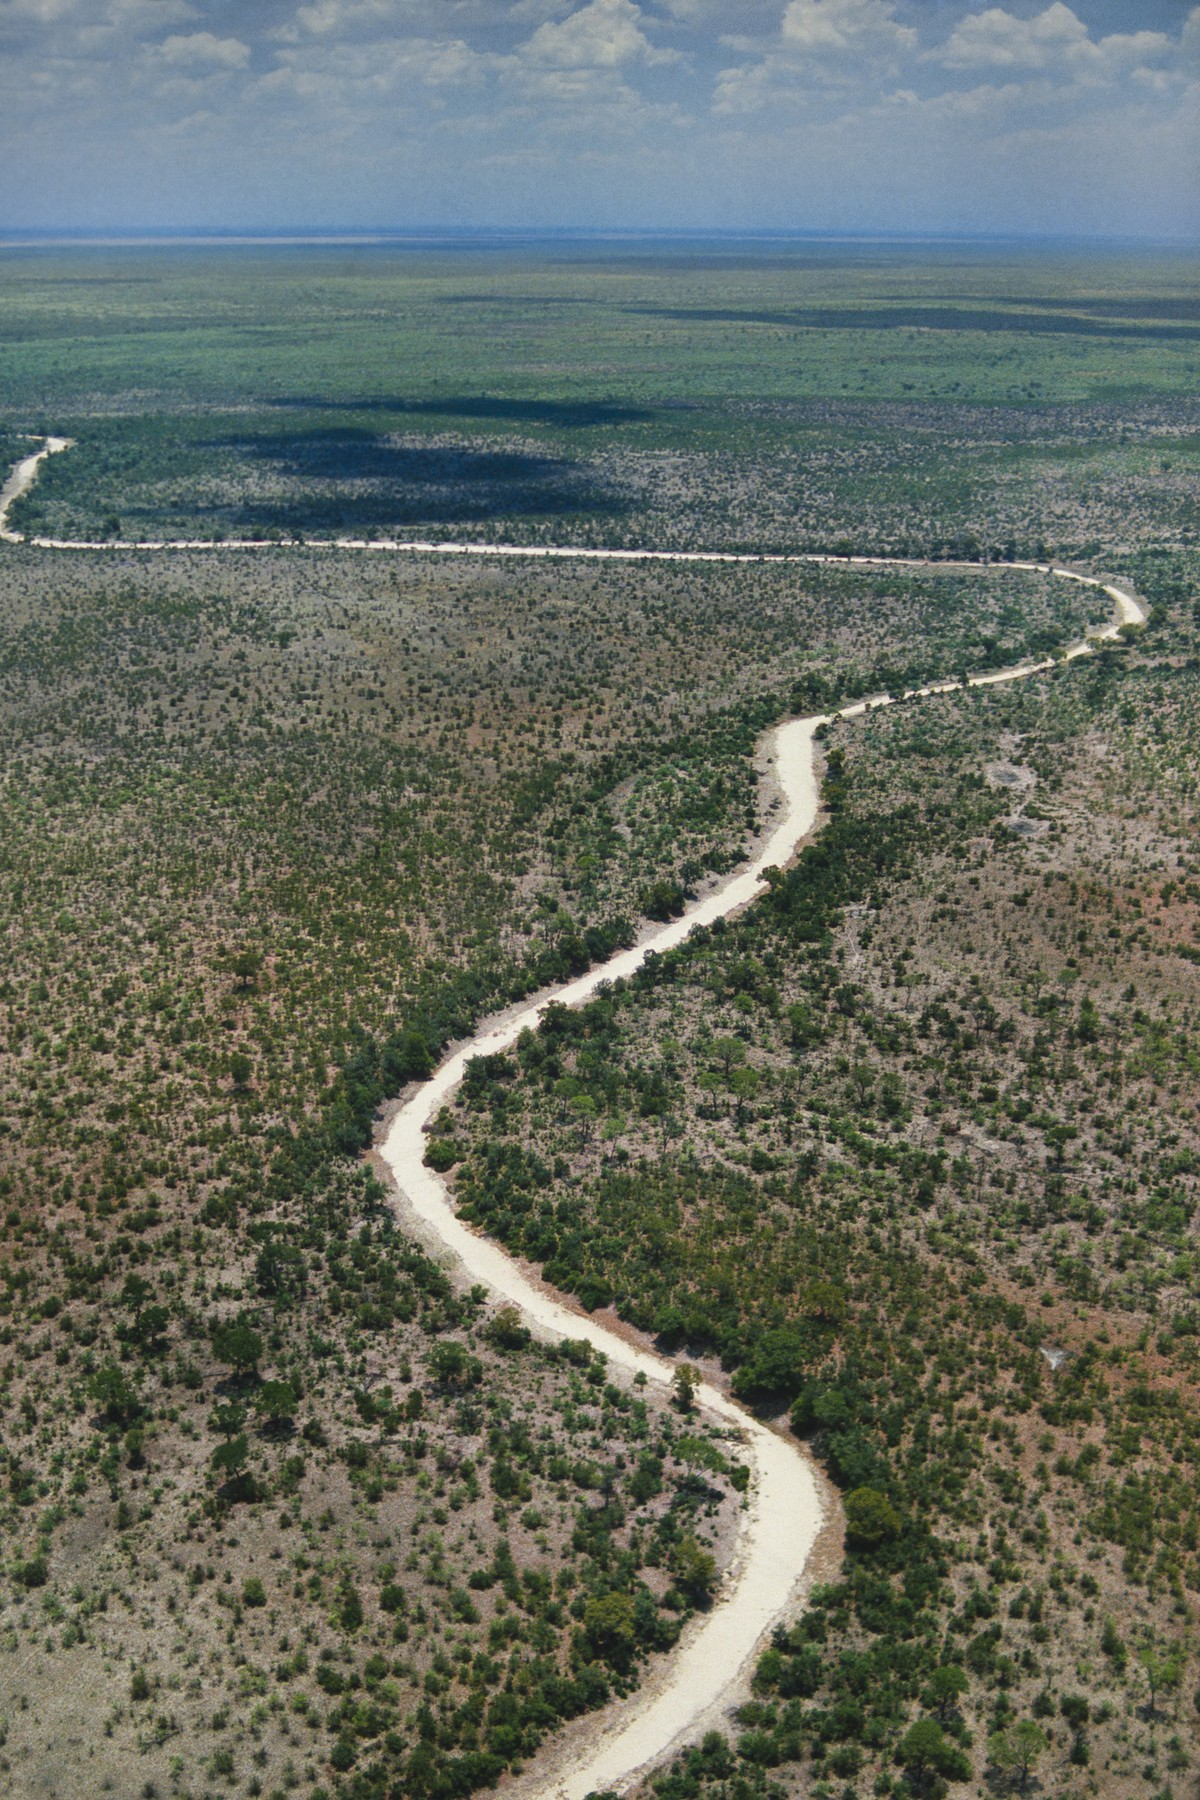 Jan. 14, 2014 - Dry river bed (aerial), Makgadikgadi Pans, Botswana, Image: 198430782, License: Rights-managed, Restrictions: , Model Release: no, Credit line: Frans Lanting / Zuma Press / Profimedia